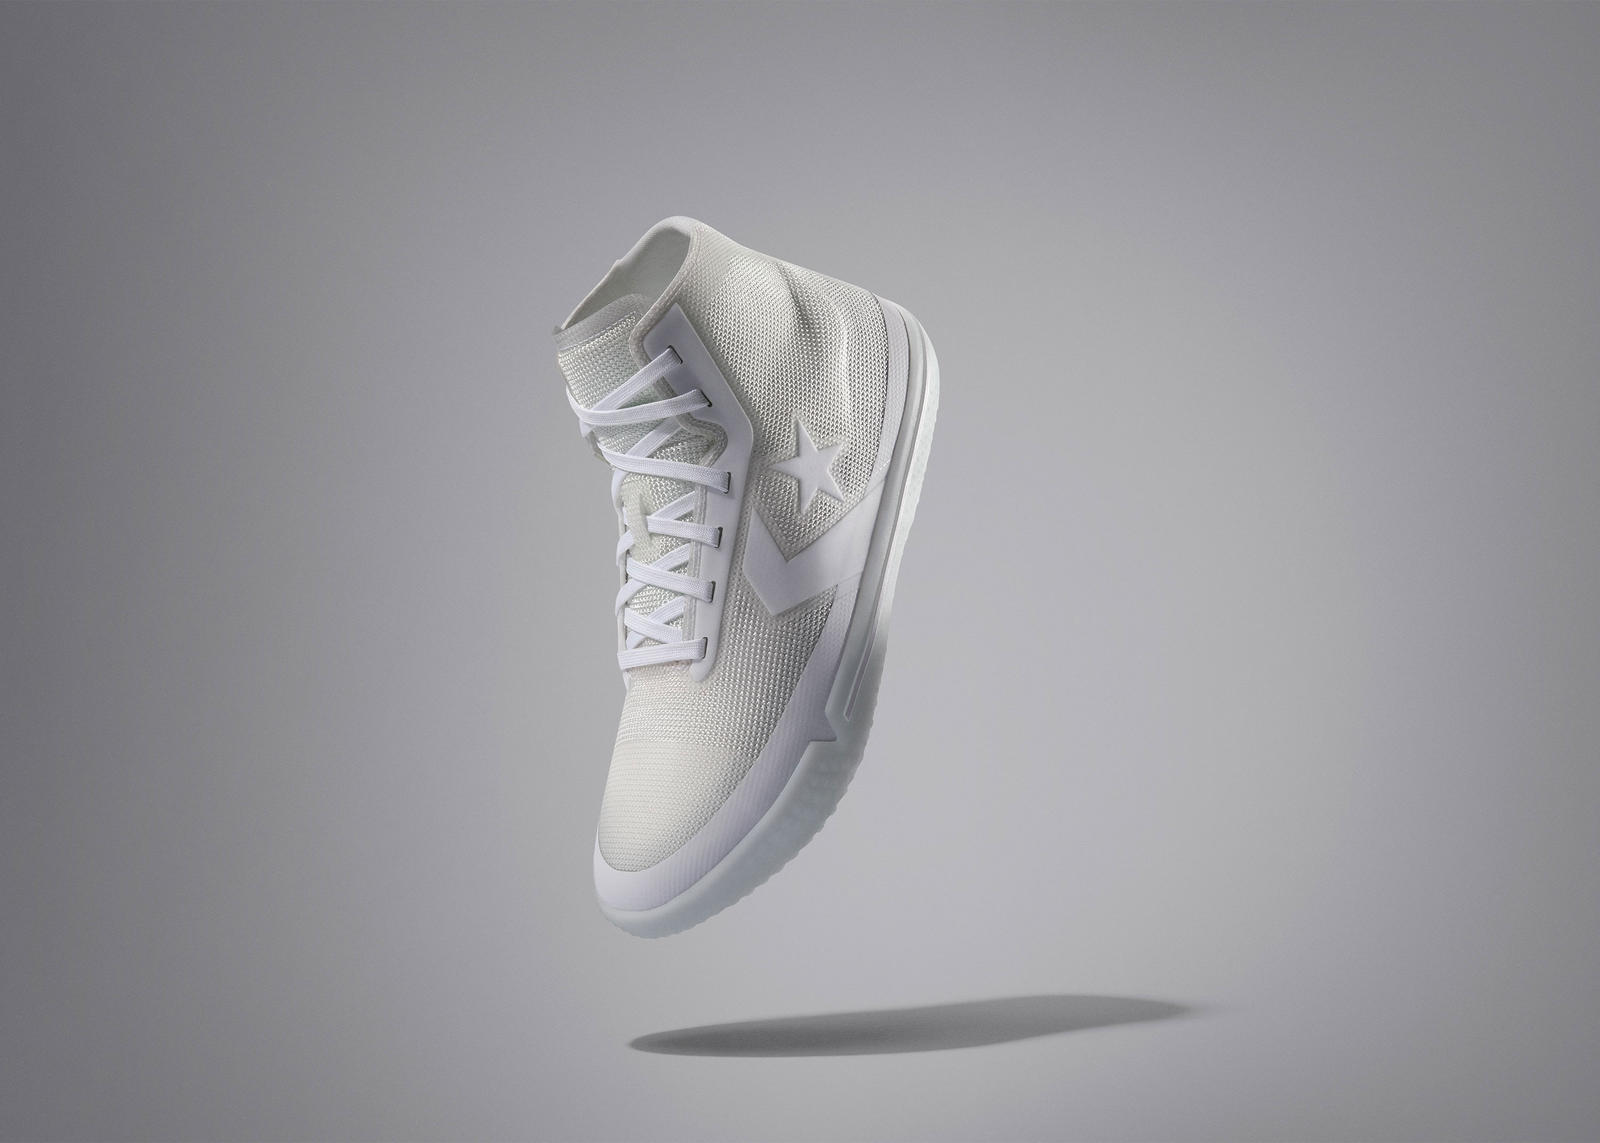 Jordan Brand Nike Converse NBA All-Star 2020 Footwear and Apparel Official Images and Release Dates 14